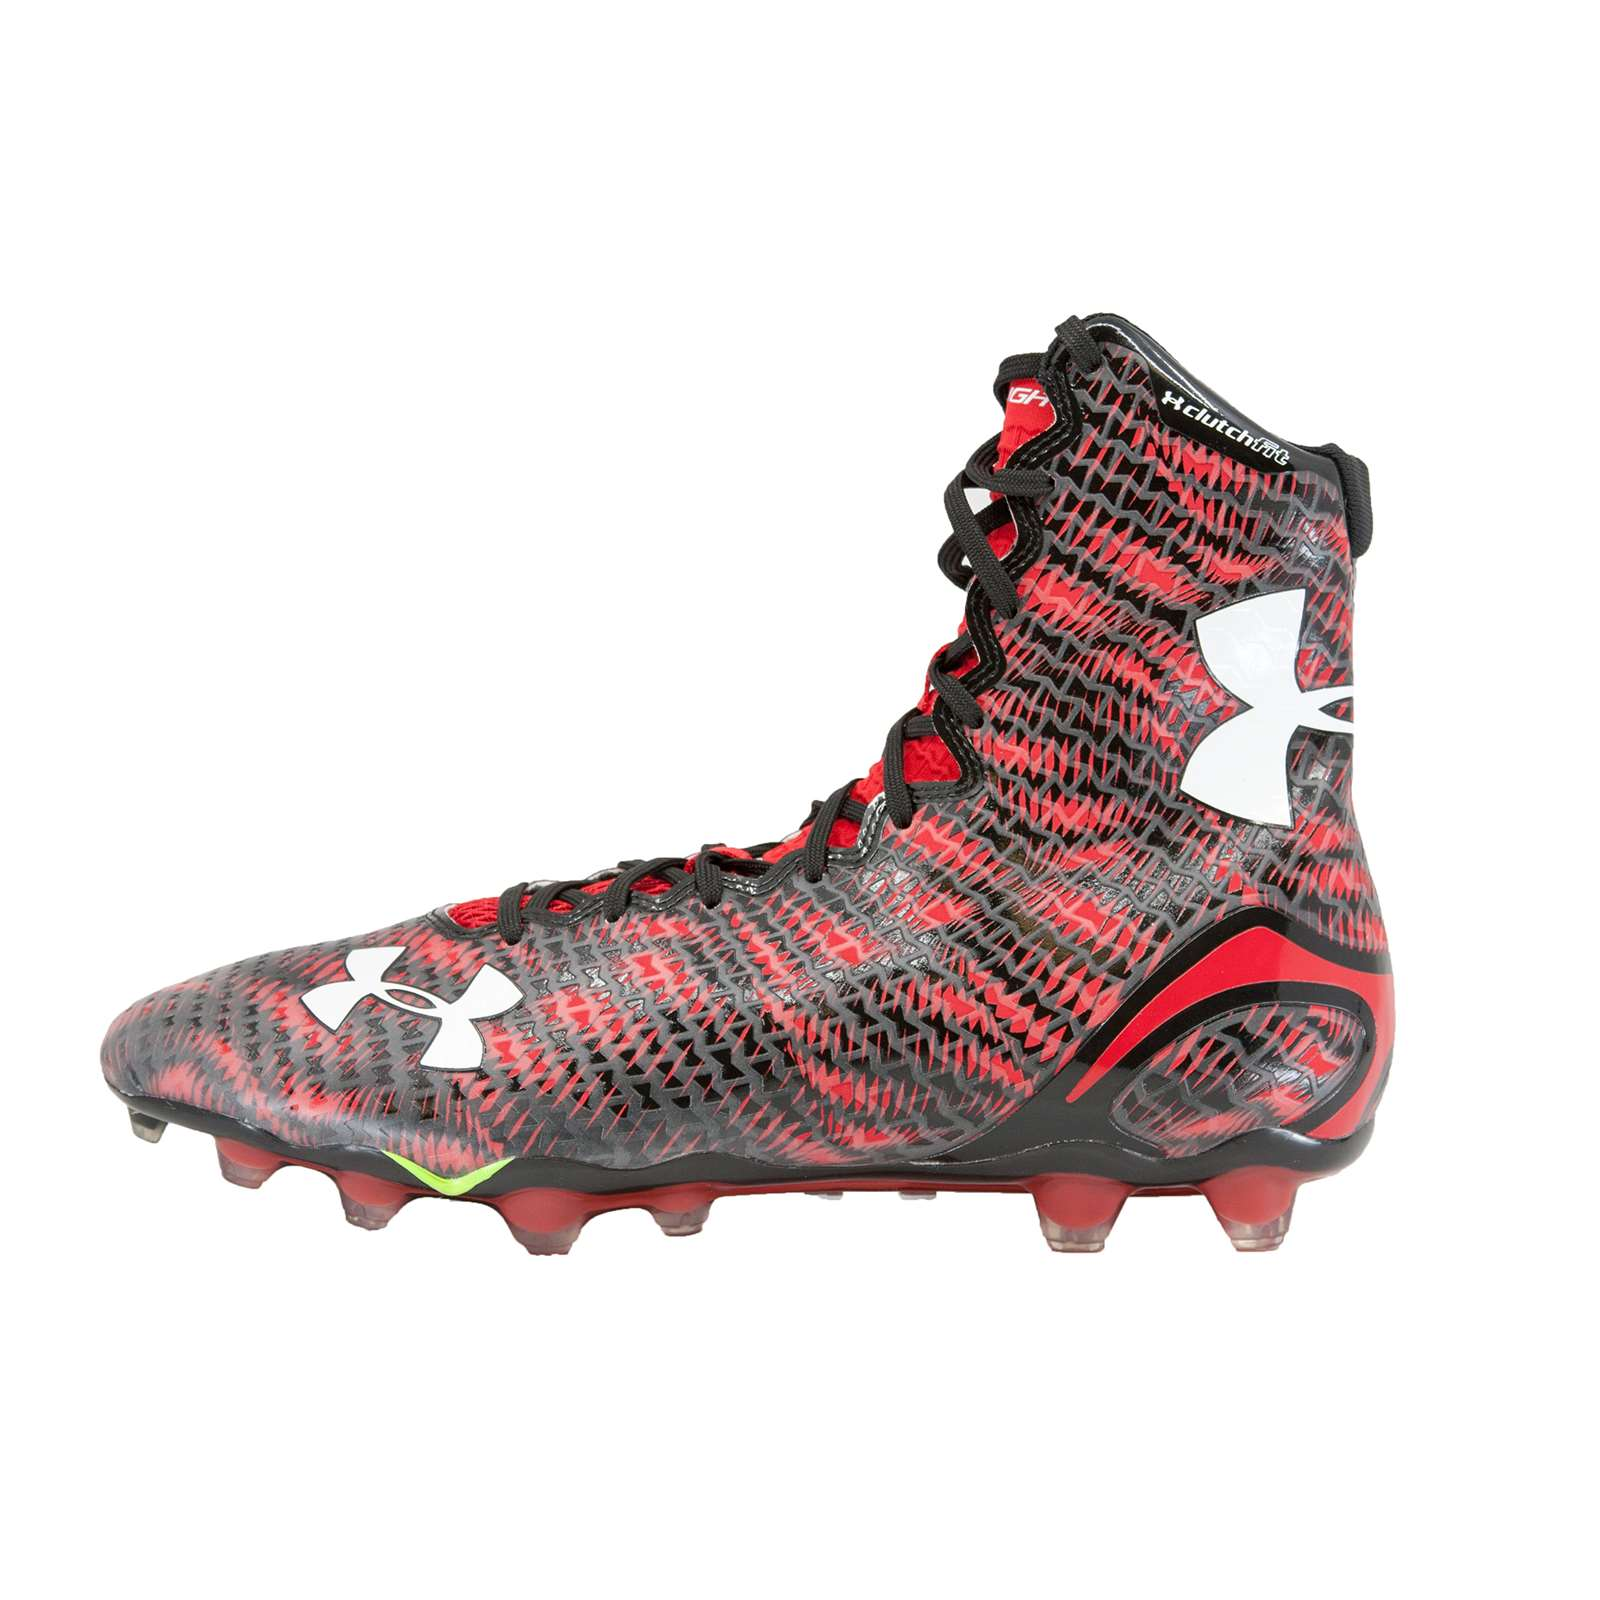 fb53c6edd Under Armour - Under Armour UA Men s Highlight MC Clutchfit Football Cleats  - Walmart.com